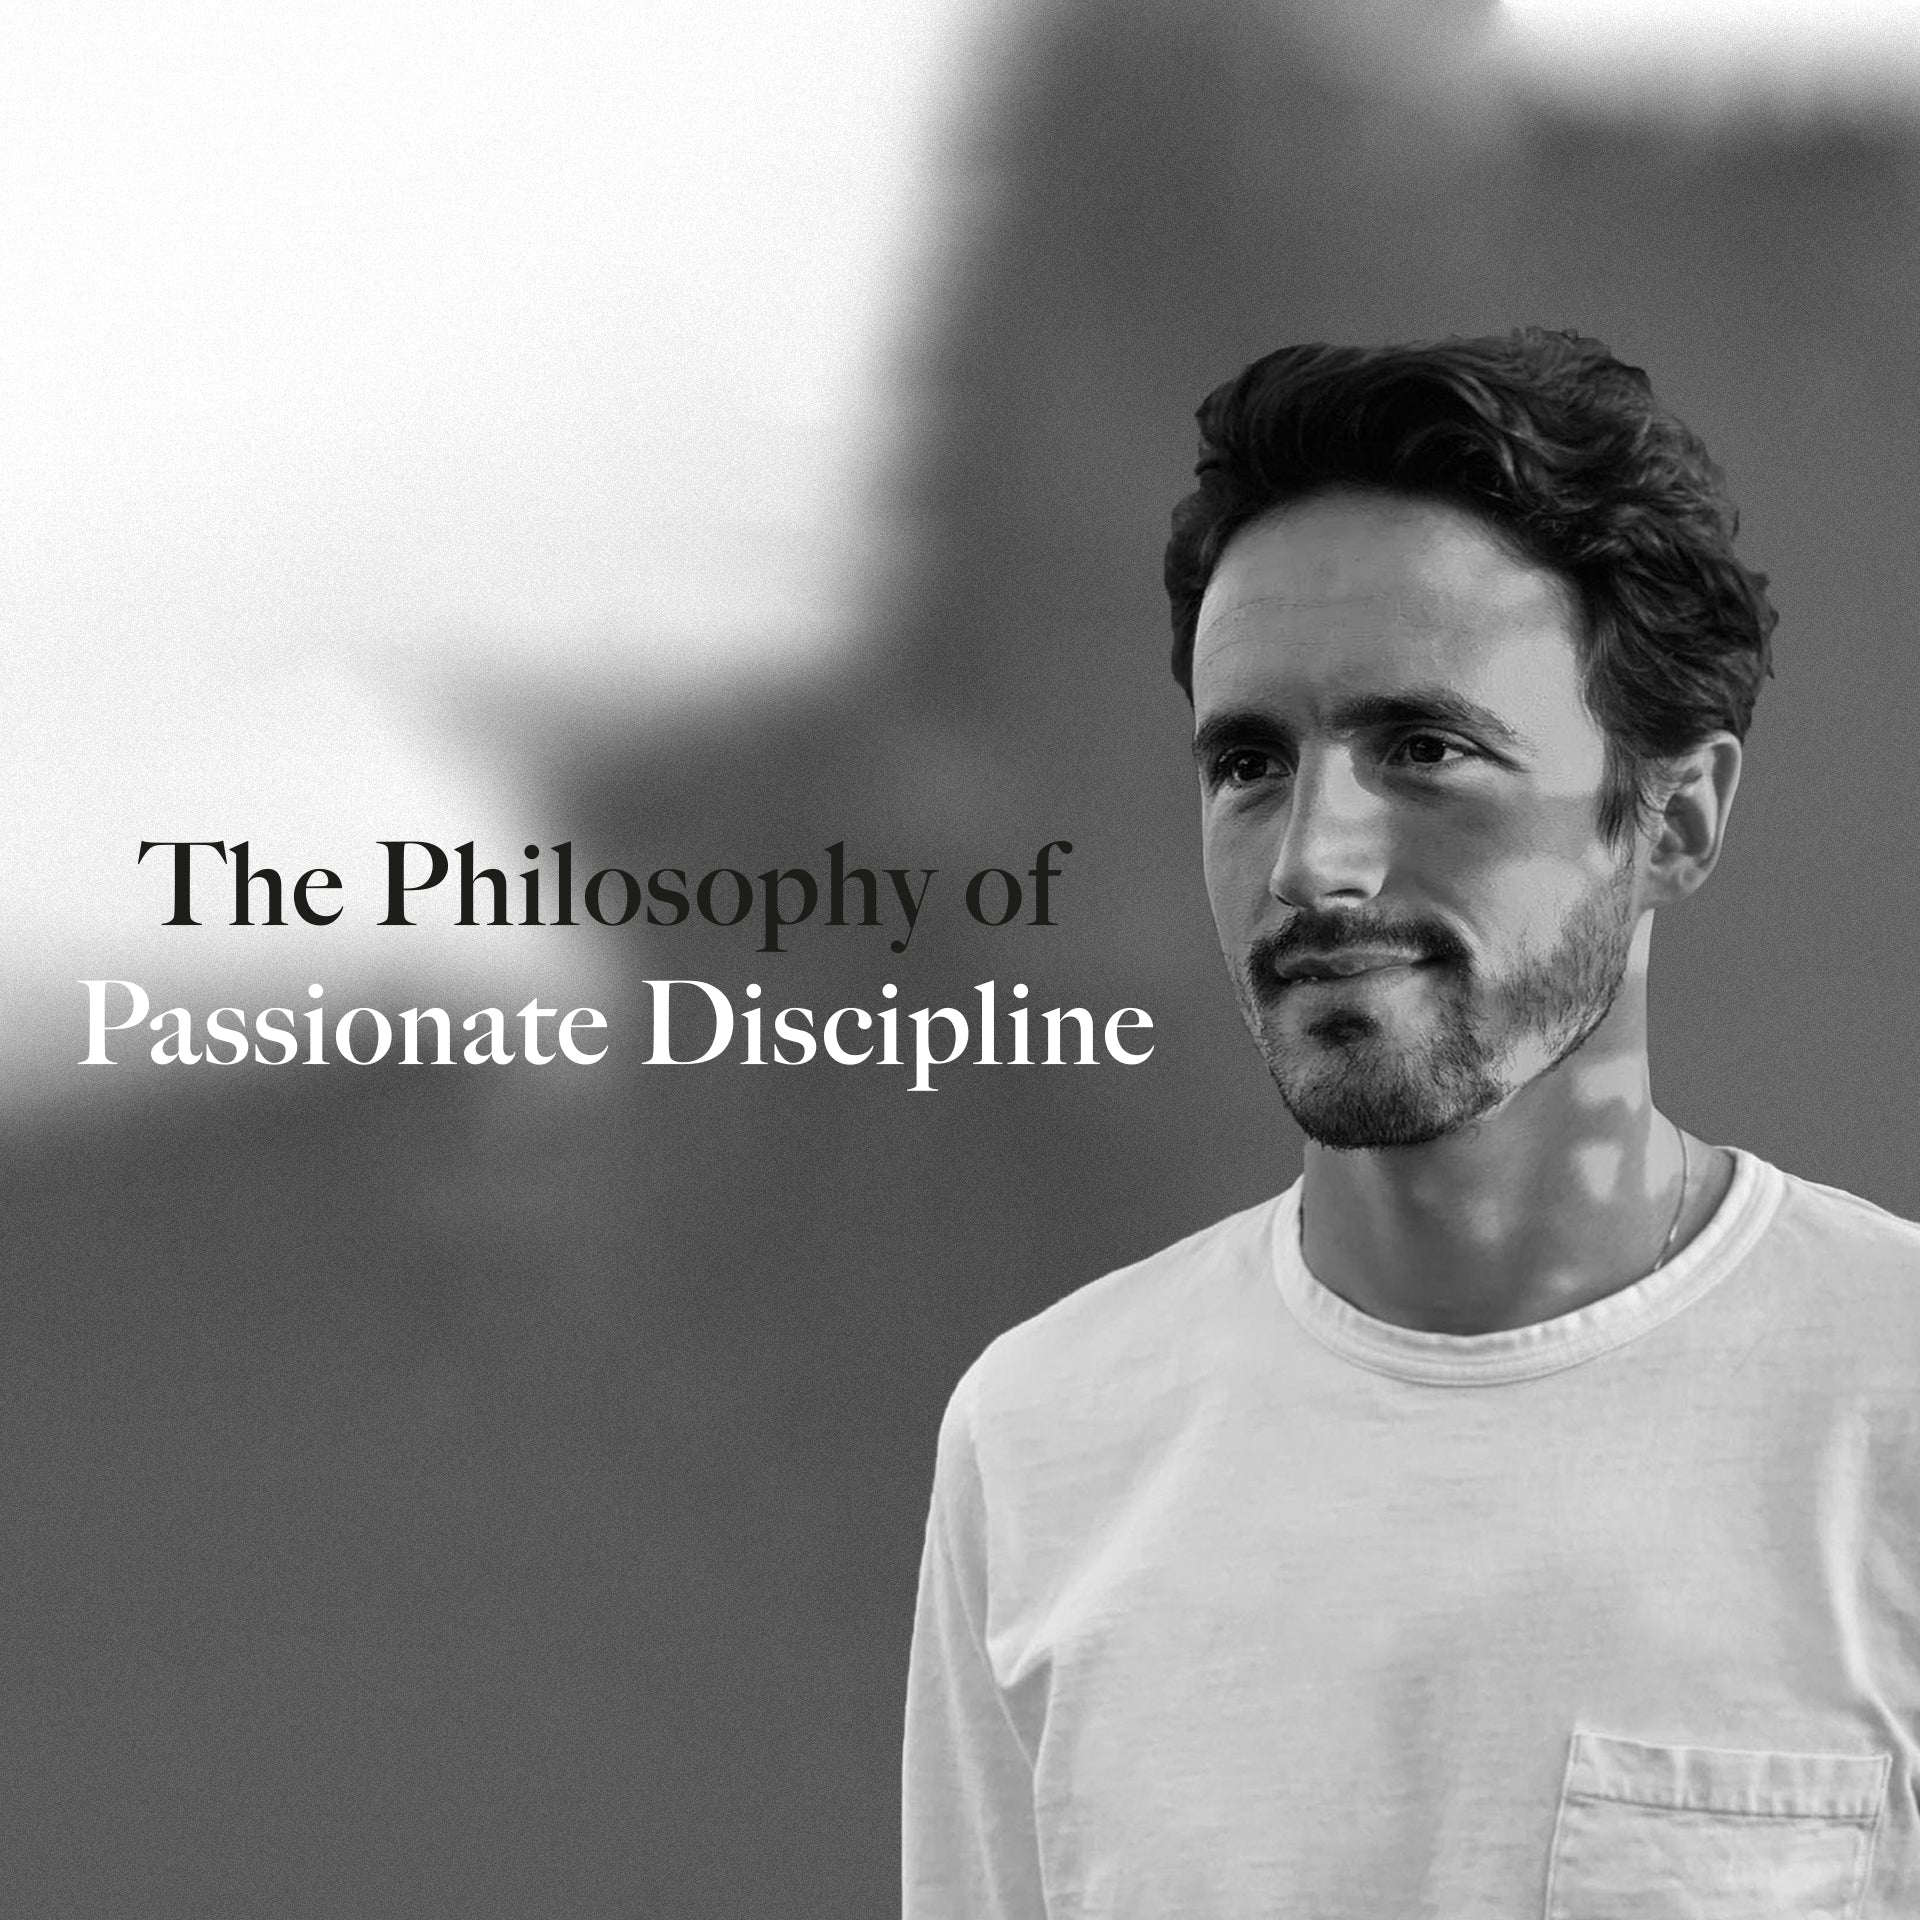 The Philosophy of Passionate Discipline – A Portrait of Thomas Delaney